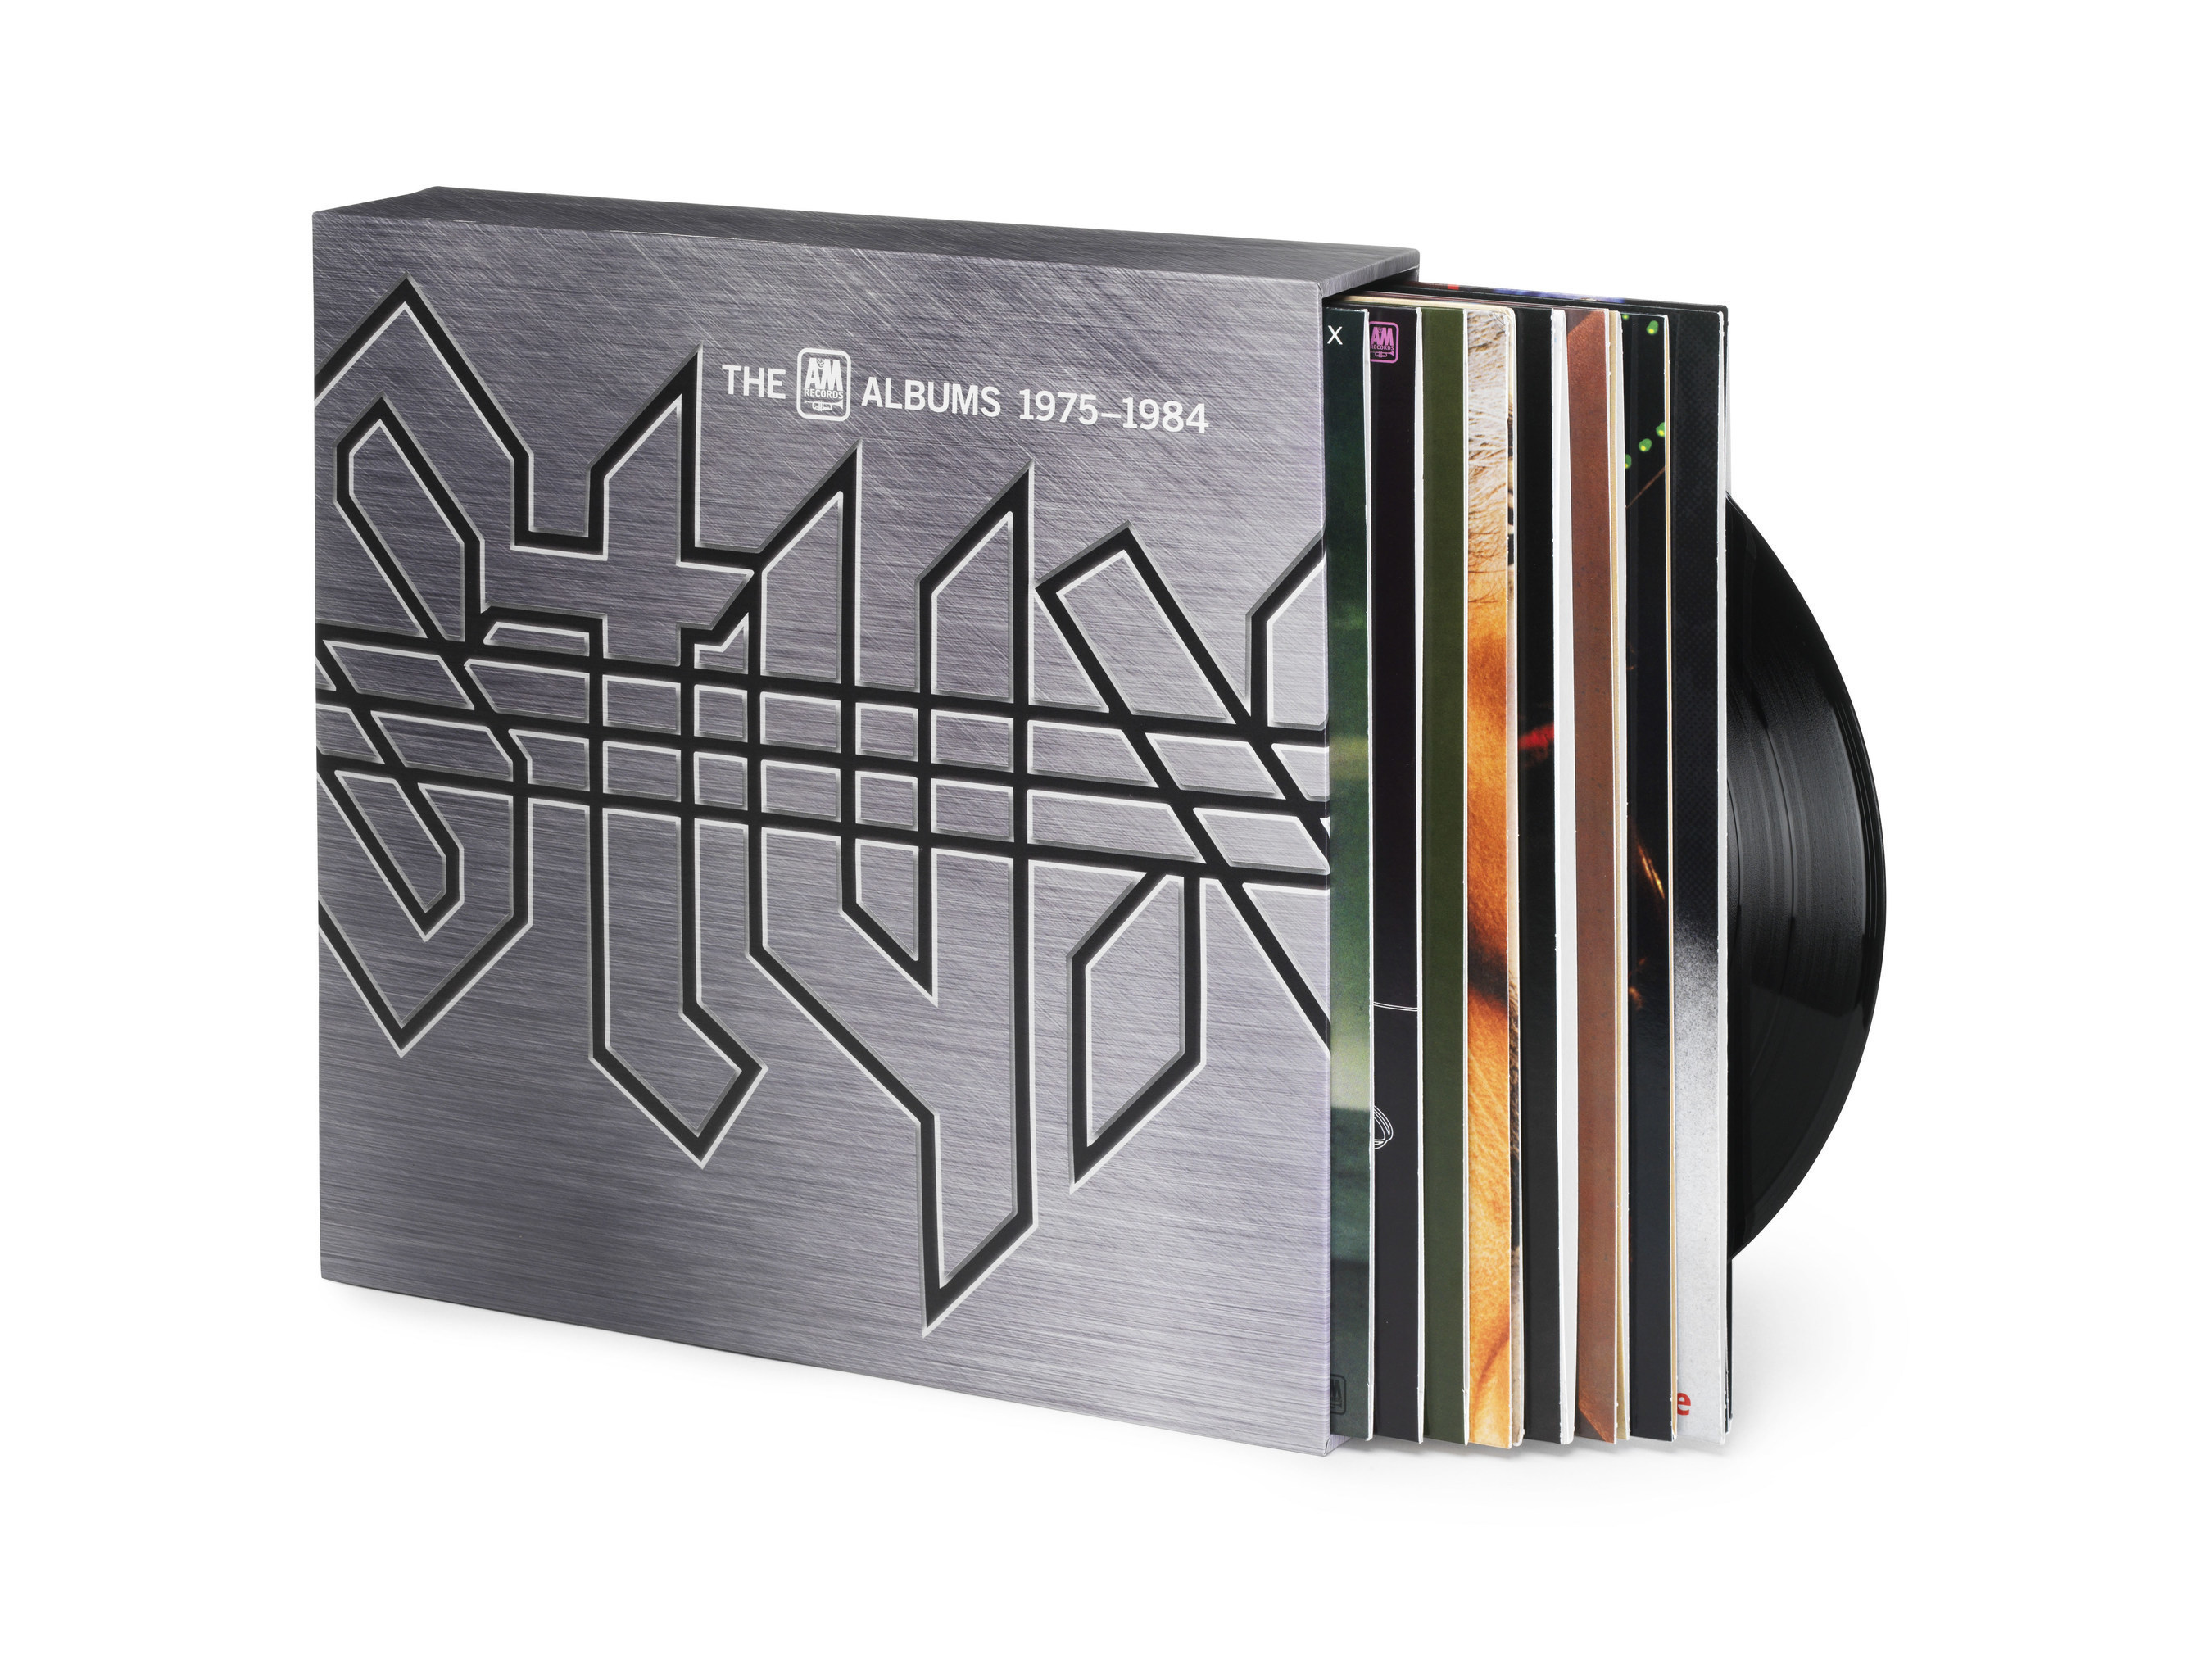 Styx: The A&M Albums: 1975-1984 Eight-Album Vinyl Box Set Collection Slated for Release by Universal Music Enterprises May 12